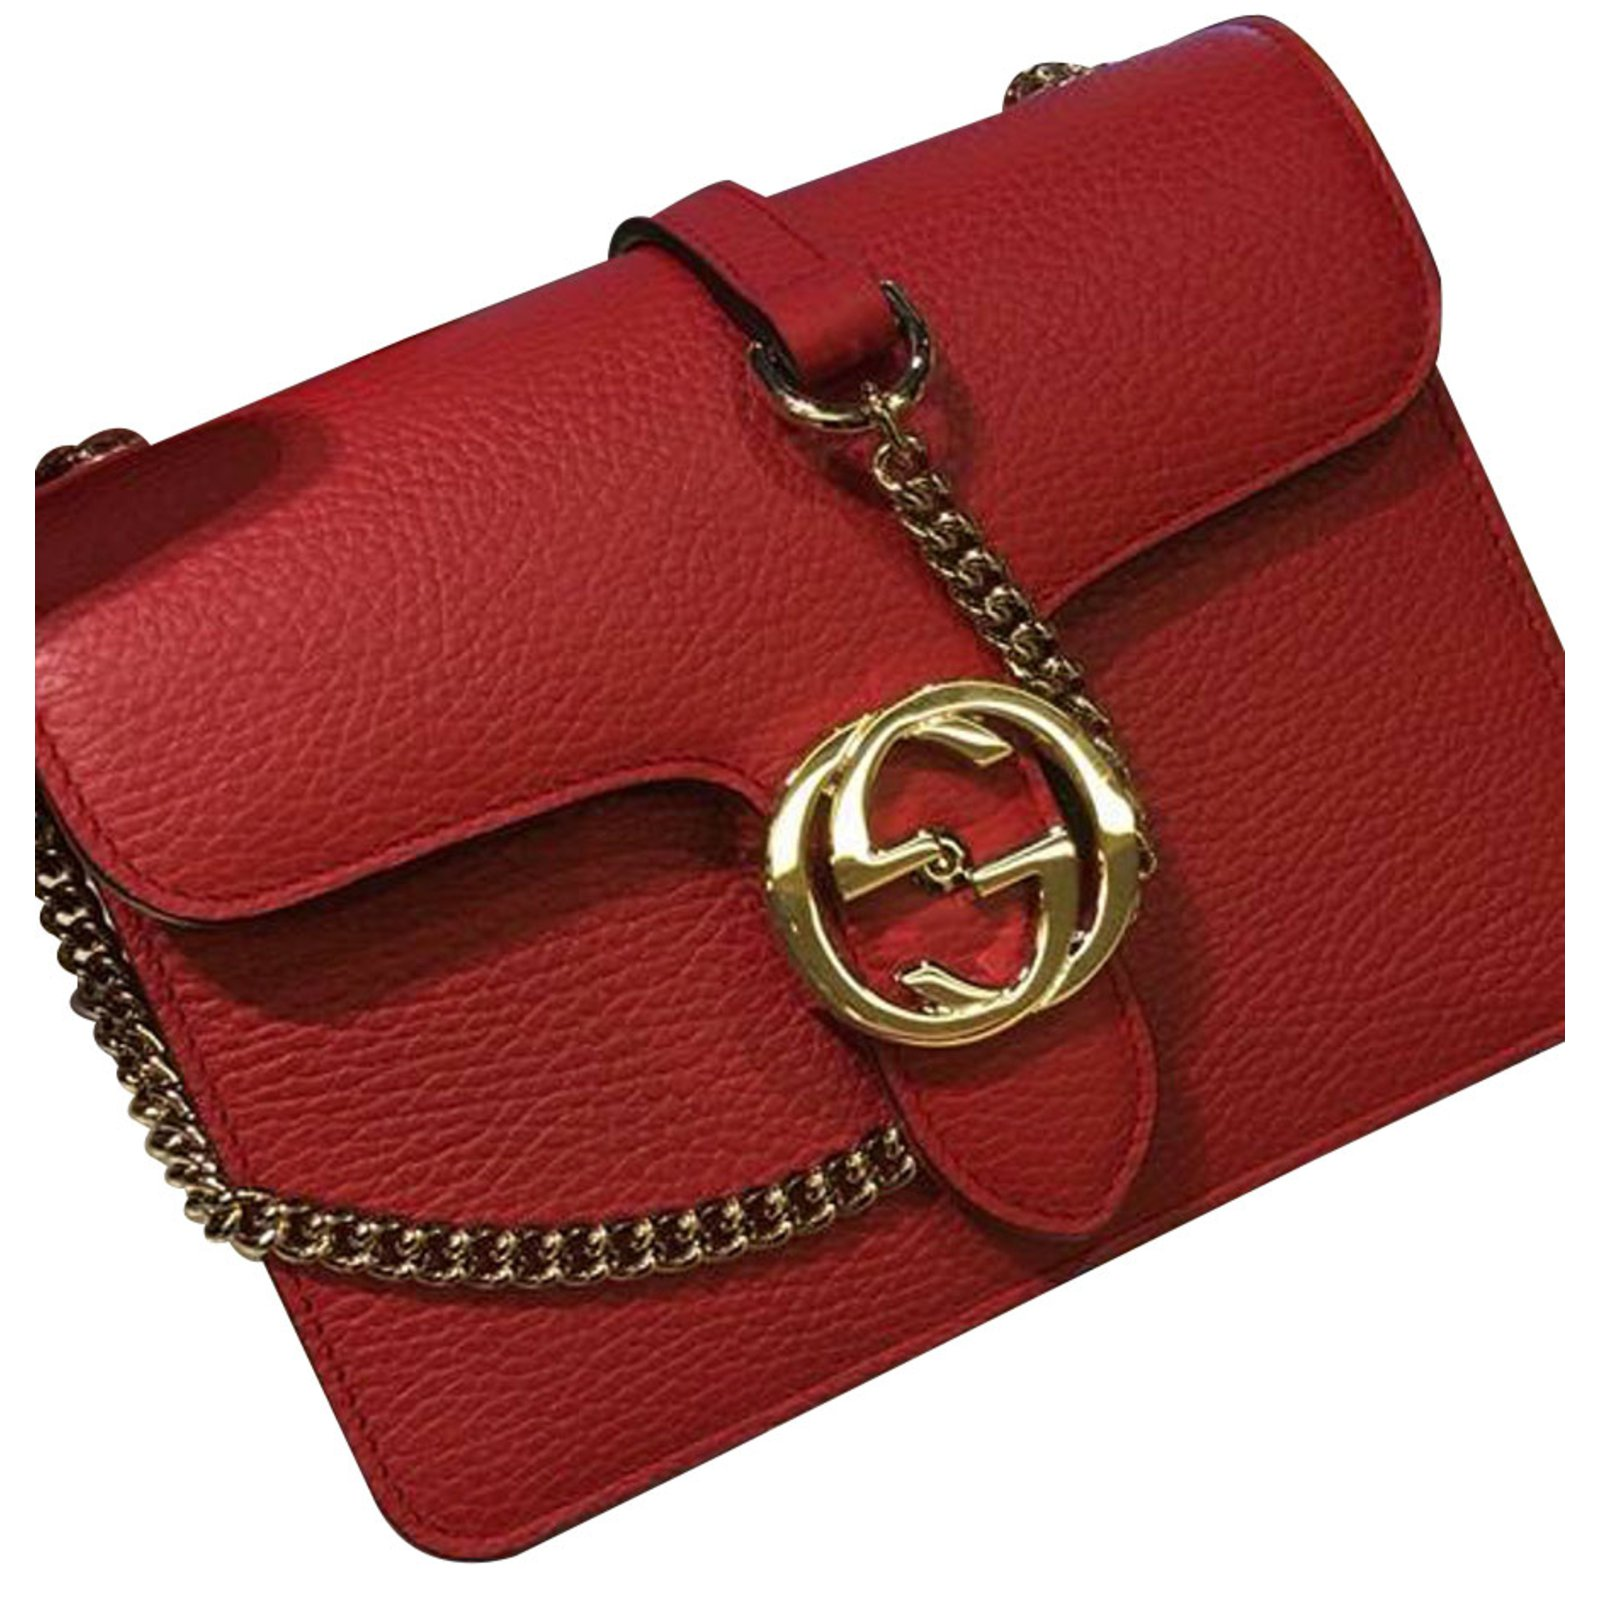 aaa188dc342 Gucci BAG GUCCI INTERLOCKING in red or azzurra or black leather !!!  Handbags Leather Other ref.62061 - Joli Closet